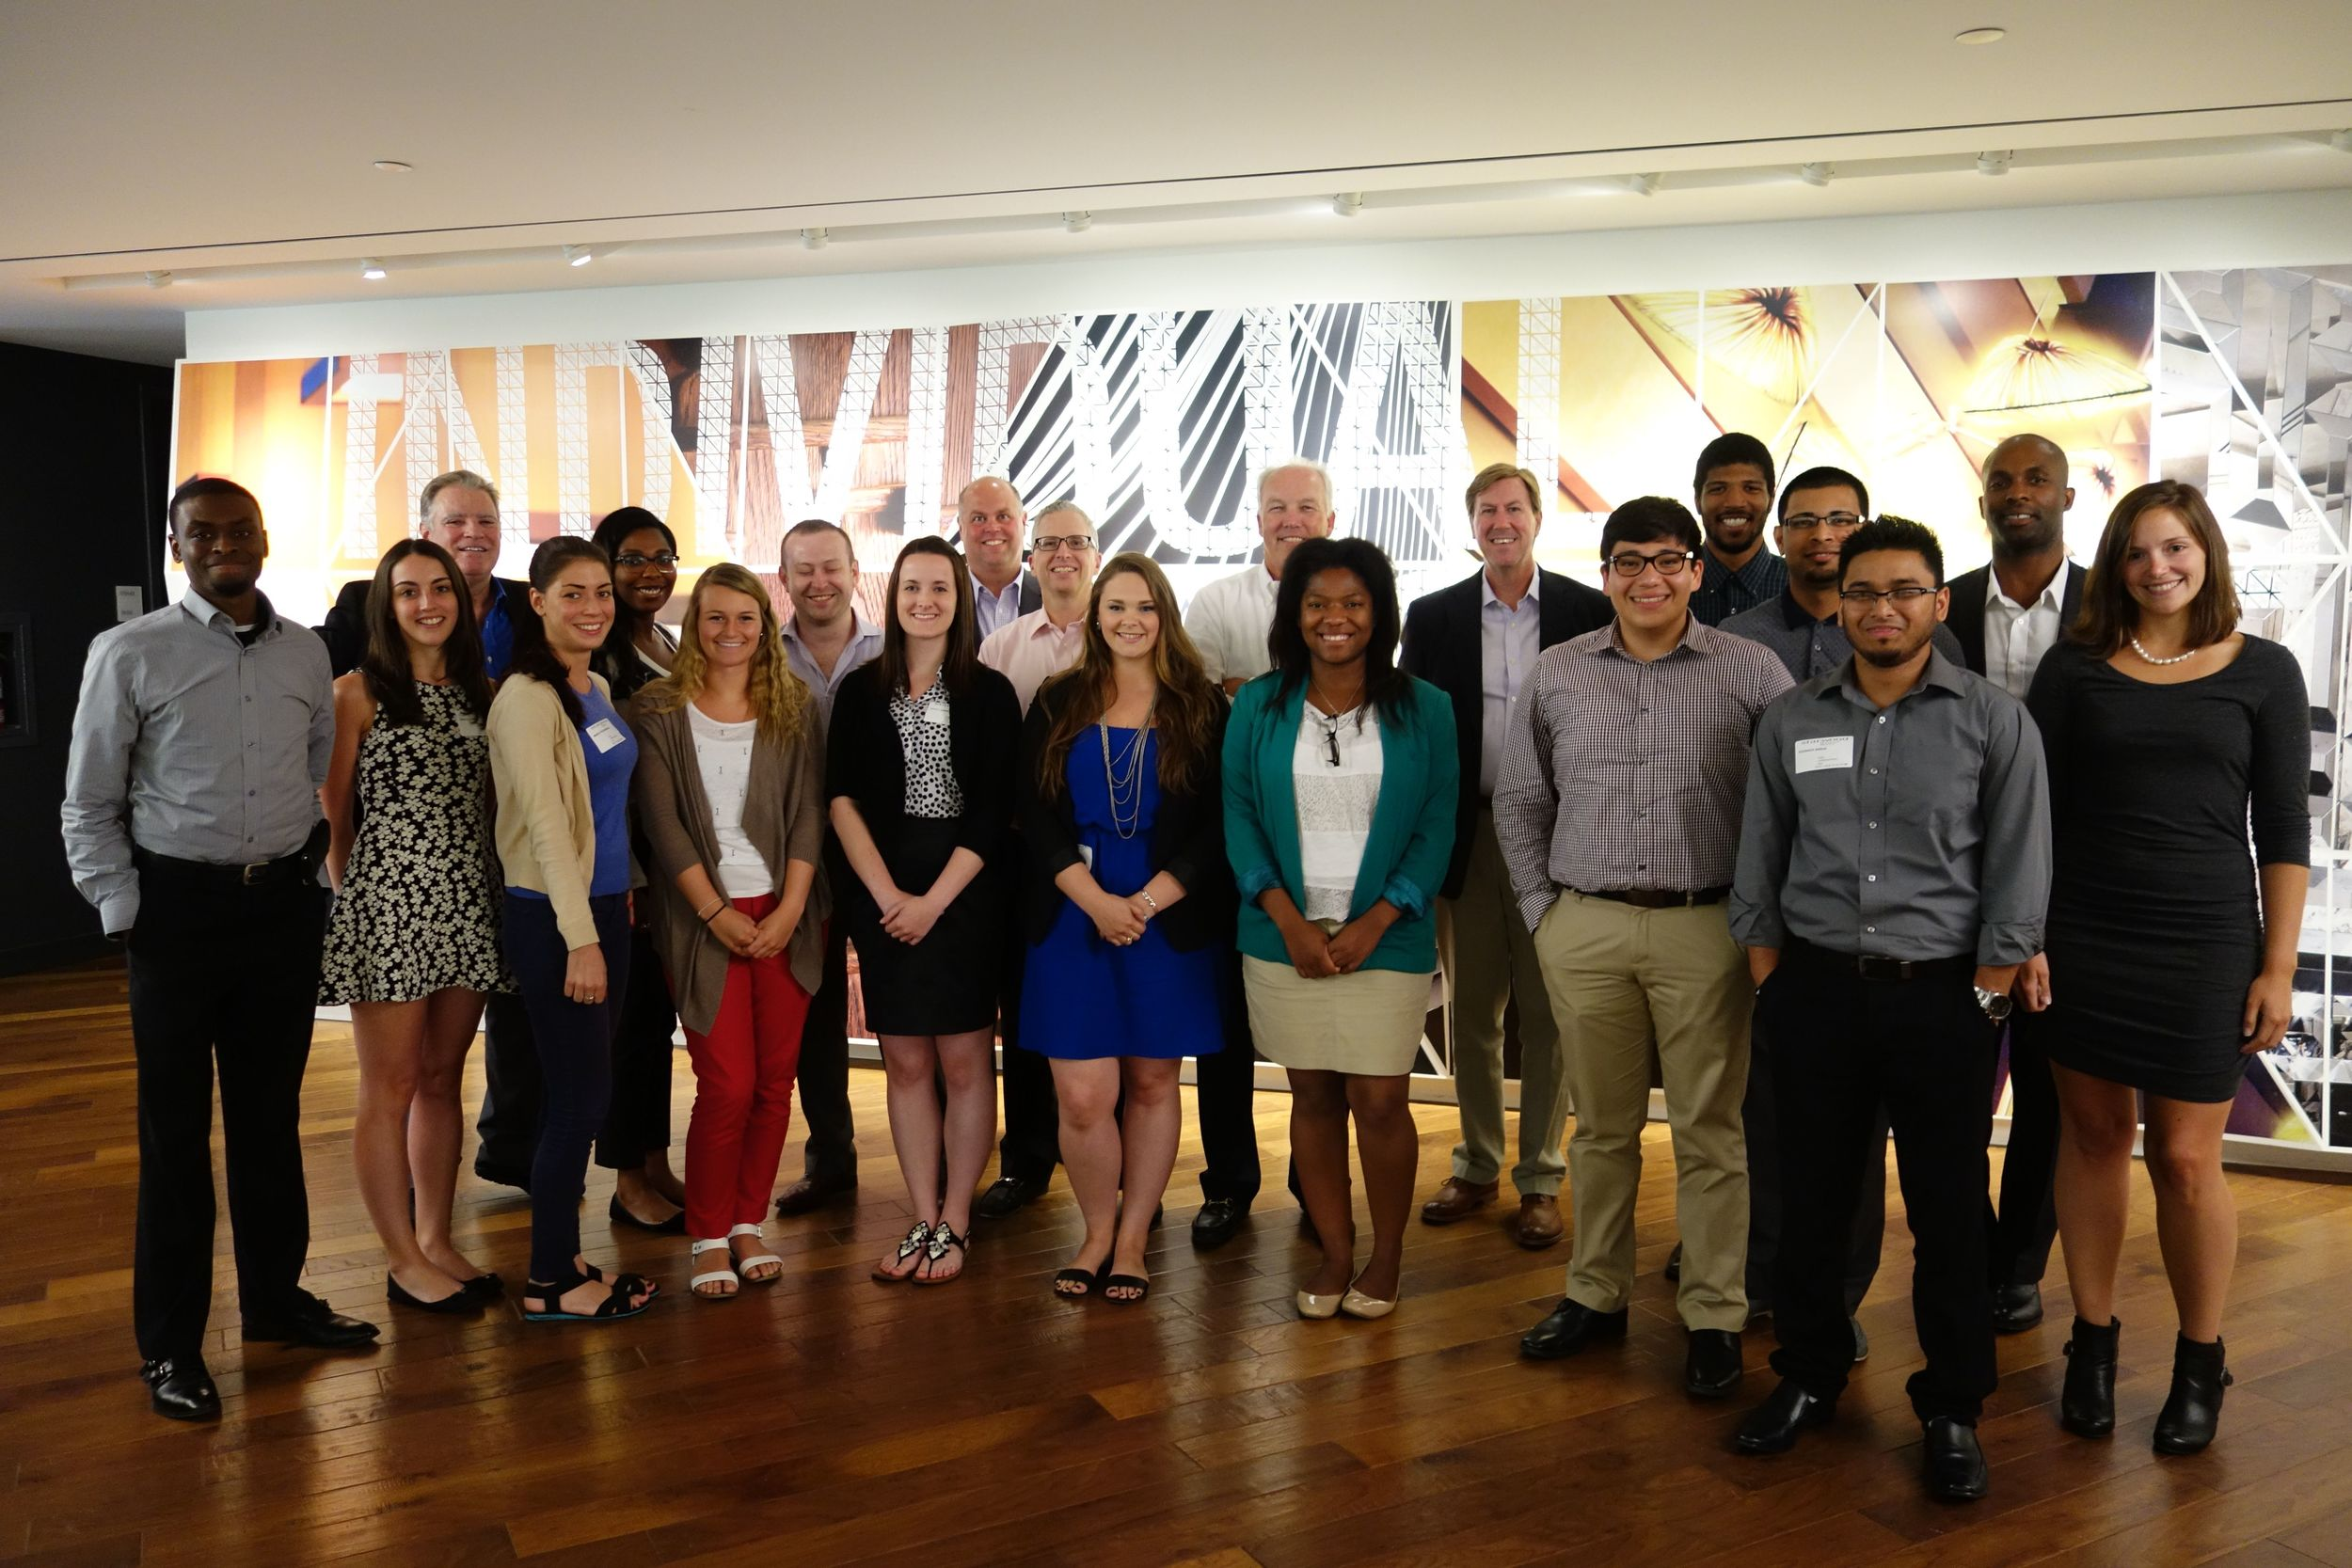 The 2014 interns at the Starwood Experience at Starwood Headquarters in Stamford, CT.